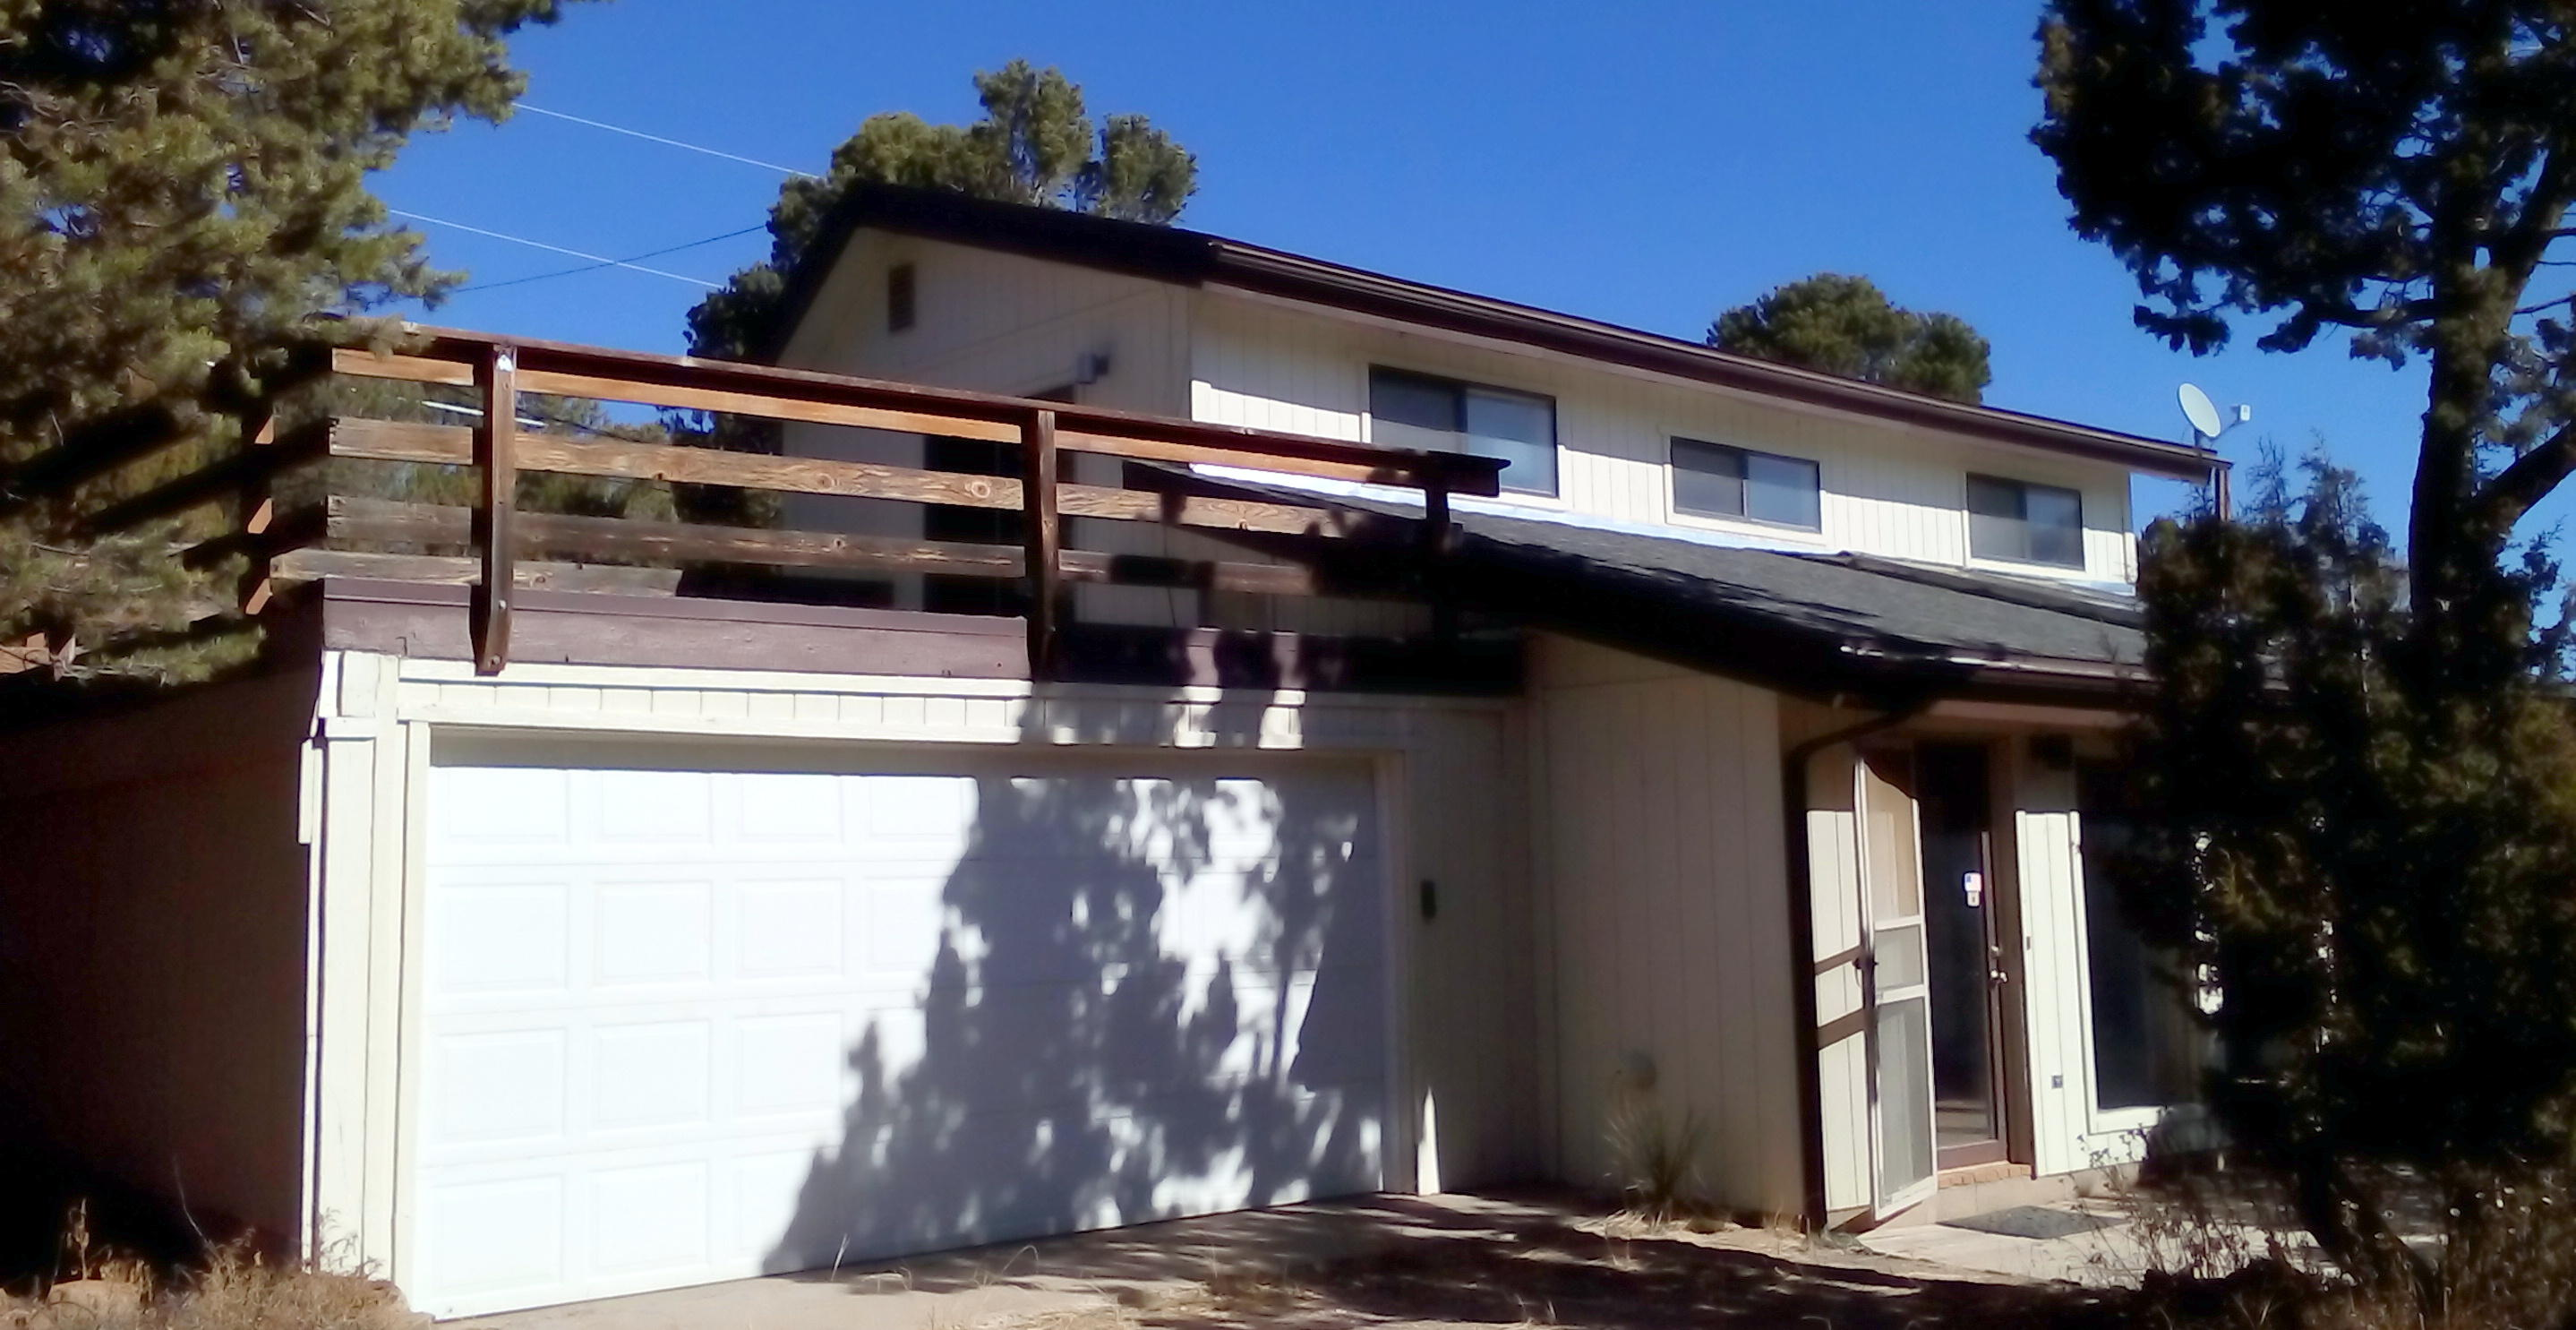 Located in highly desirable Sierra Vista Estates across the street from Milly's Meadow, this passive solar home is ready for new east mountain owners.  The main floor is a huge living area with open kitchen space and a beautiful brick floor.  The kitchen has been updated with a new range, vented microwave, and disposal.  Upstairs is a second bedroom, bathroom and a loft area for use as a bedroom or office with a walk out patio (20'X20') over the garage for relaxing and enjoying the surrounding views and wildlife.  The sun room offers a cozy breakfast nook amidst the trees.  A large (17'X11') hobby/laundry room offers a place for exercise equipment or gardening.  The house is connected to a reliable community well system with fire hydrants.  Come on out to the green side of the mountain and